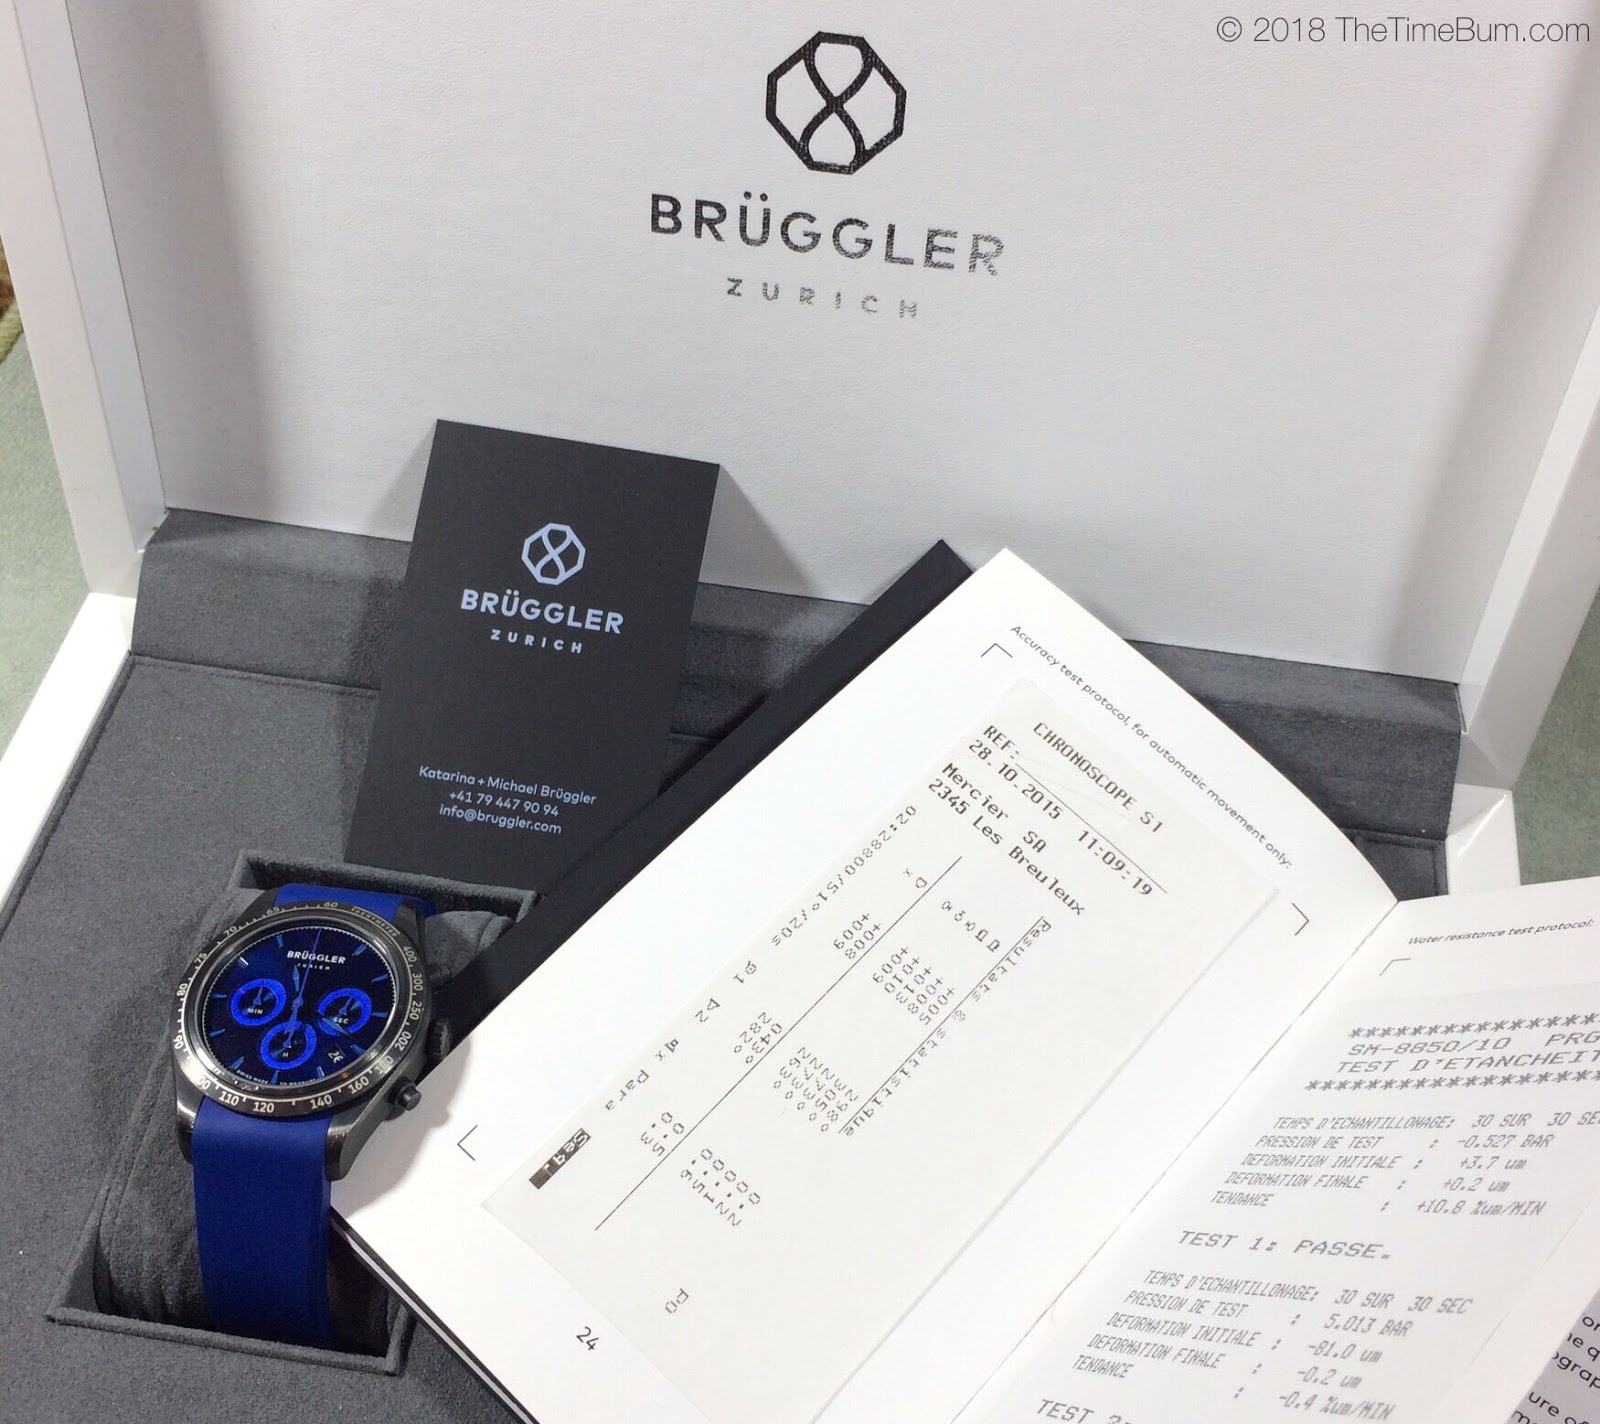 Bruggler Chronograph full kit